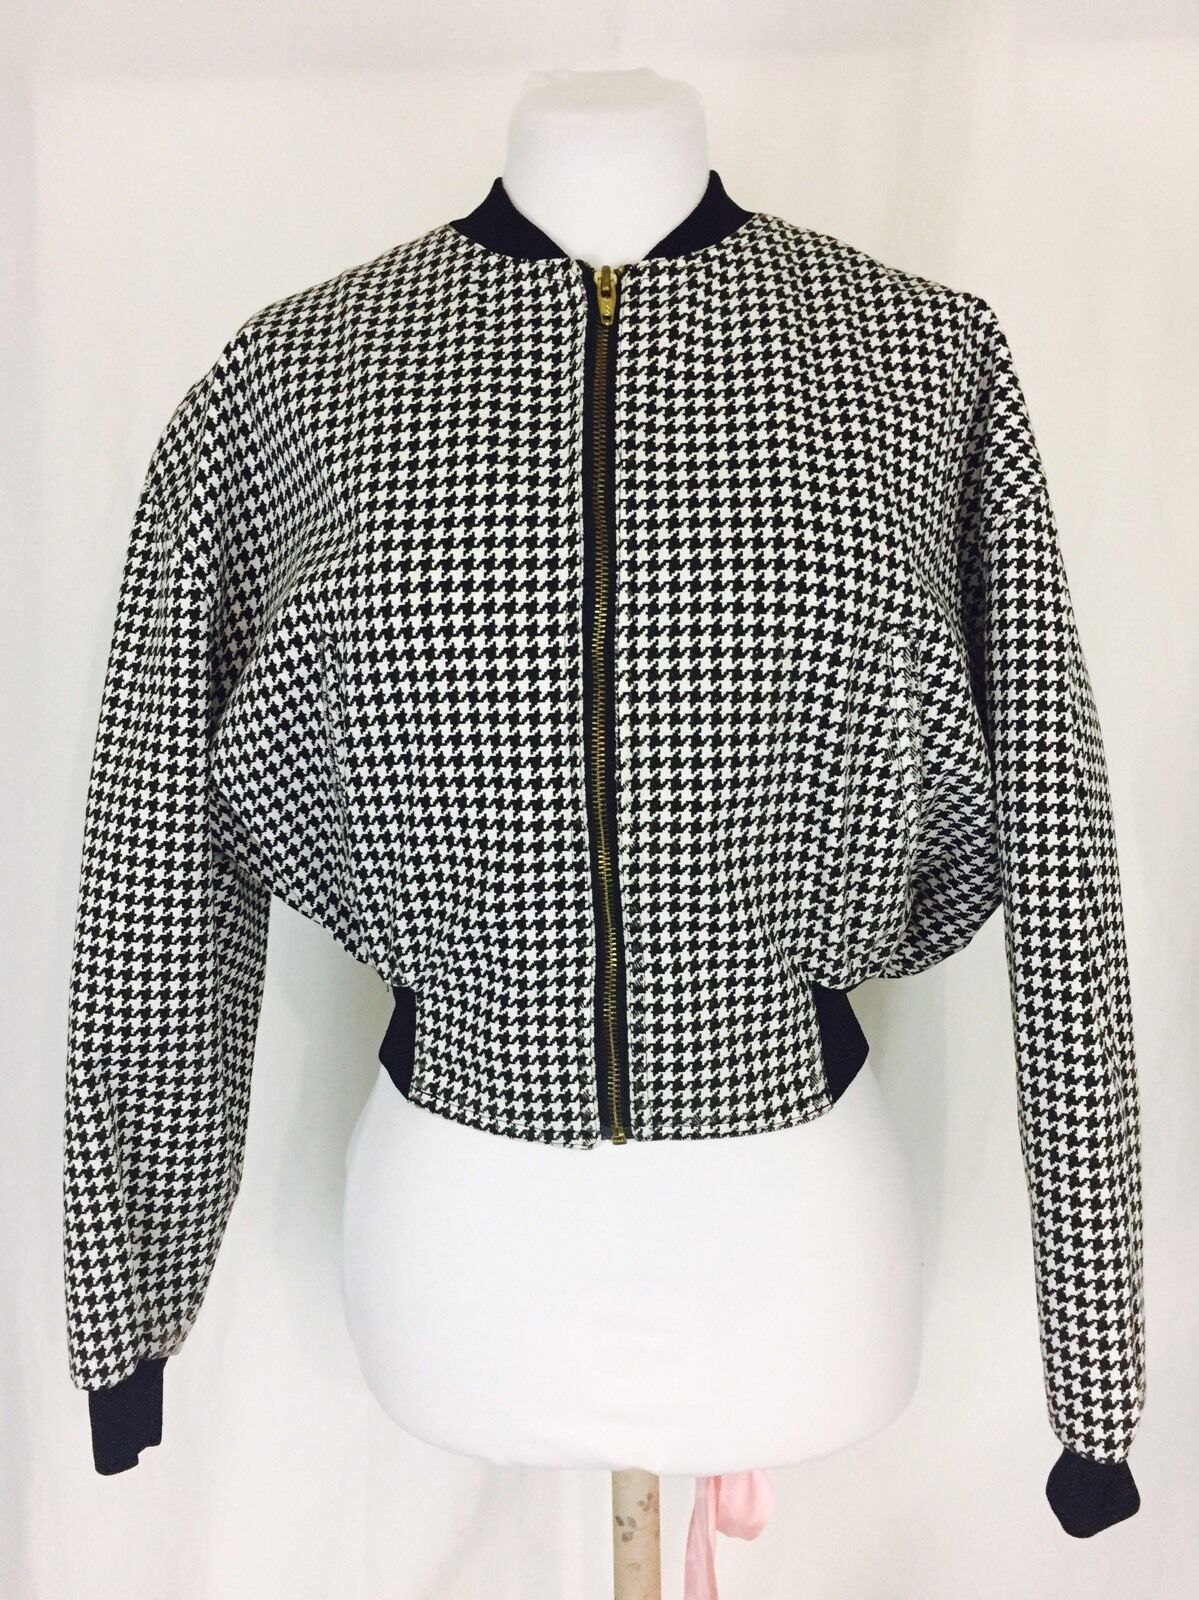 Houndstooth Cropped Bomber Jacket Vintage 1980's Small Women's Black White